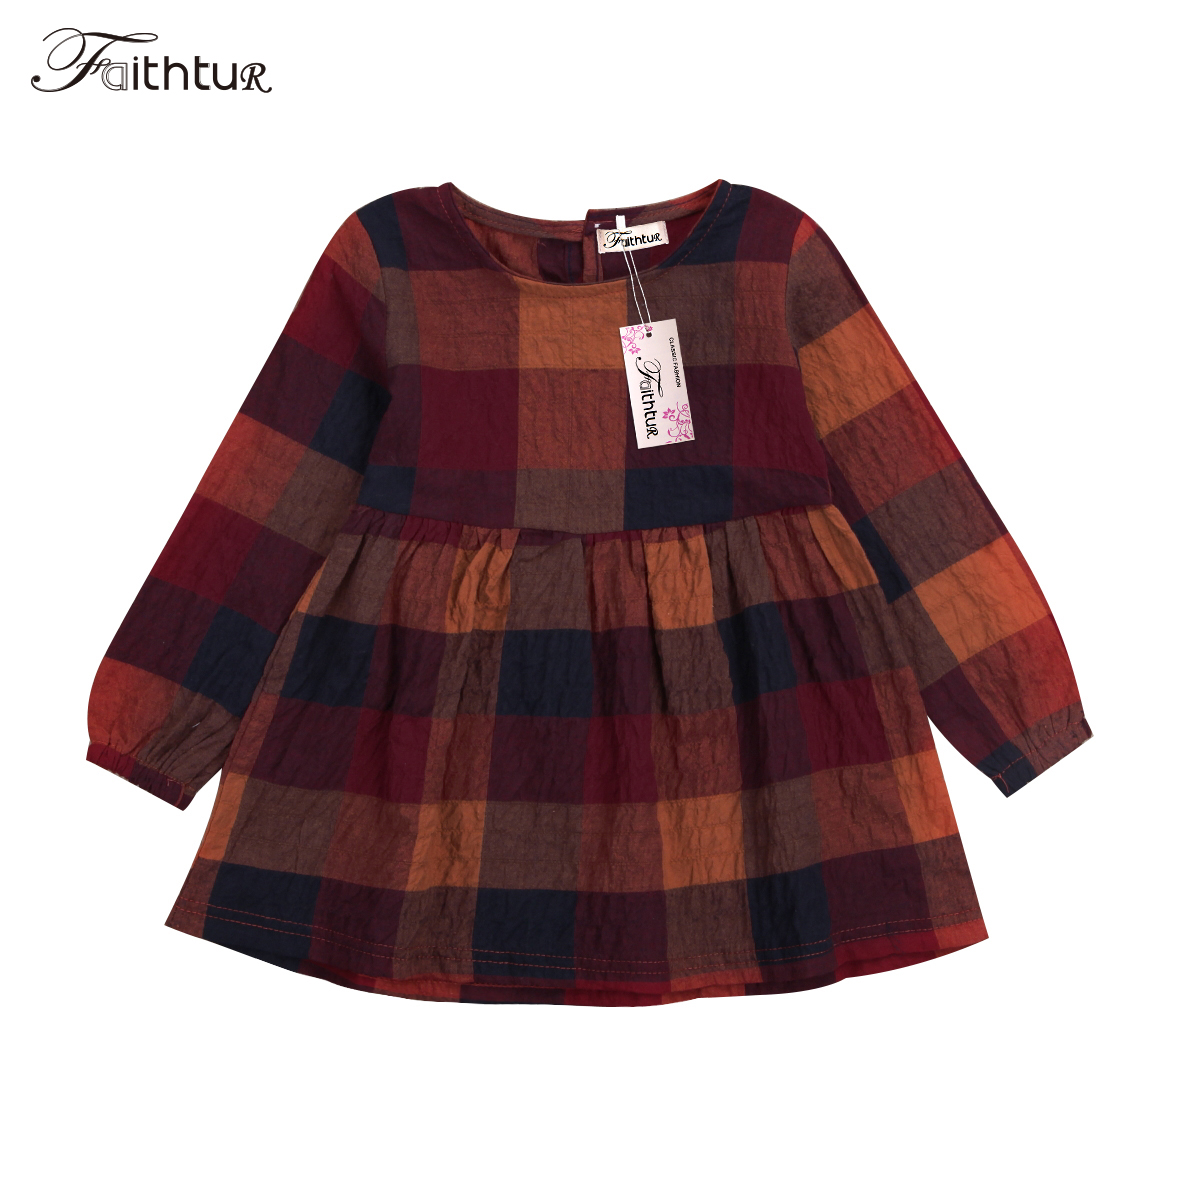 2018 new cute kid plaid dress Infant Toddler Baby Girl long sleeve Dress Princess Party Wedding Red Plaided mini dresses Clothes 2016 toddler flower girl dress winter children girl clothing autumn kid clothes brand long sleeve princess party wedding vintage